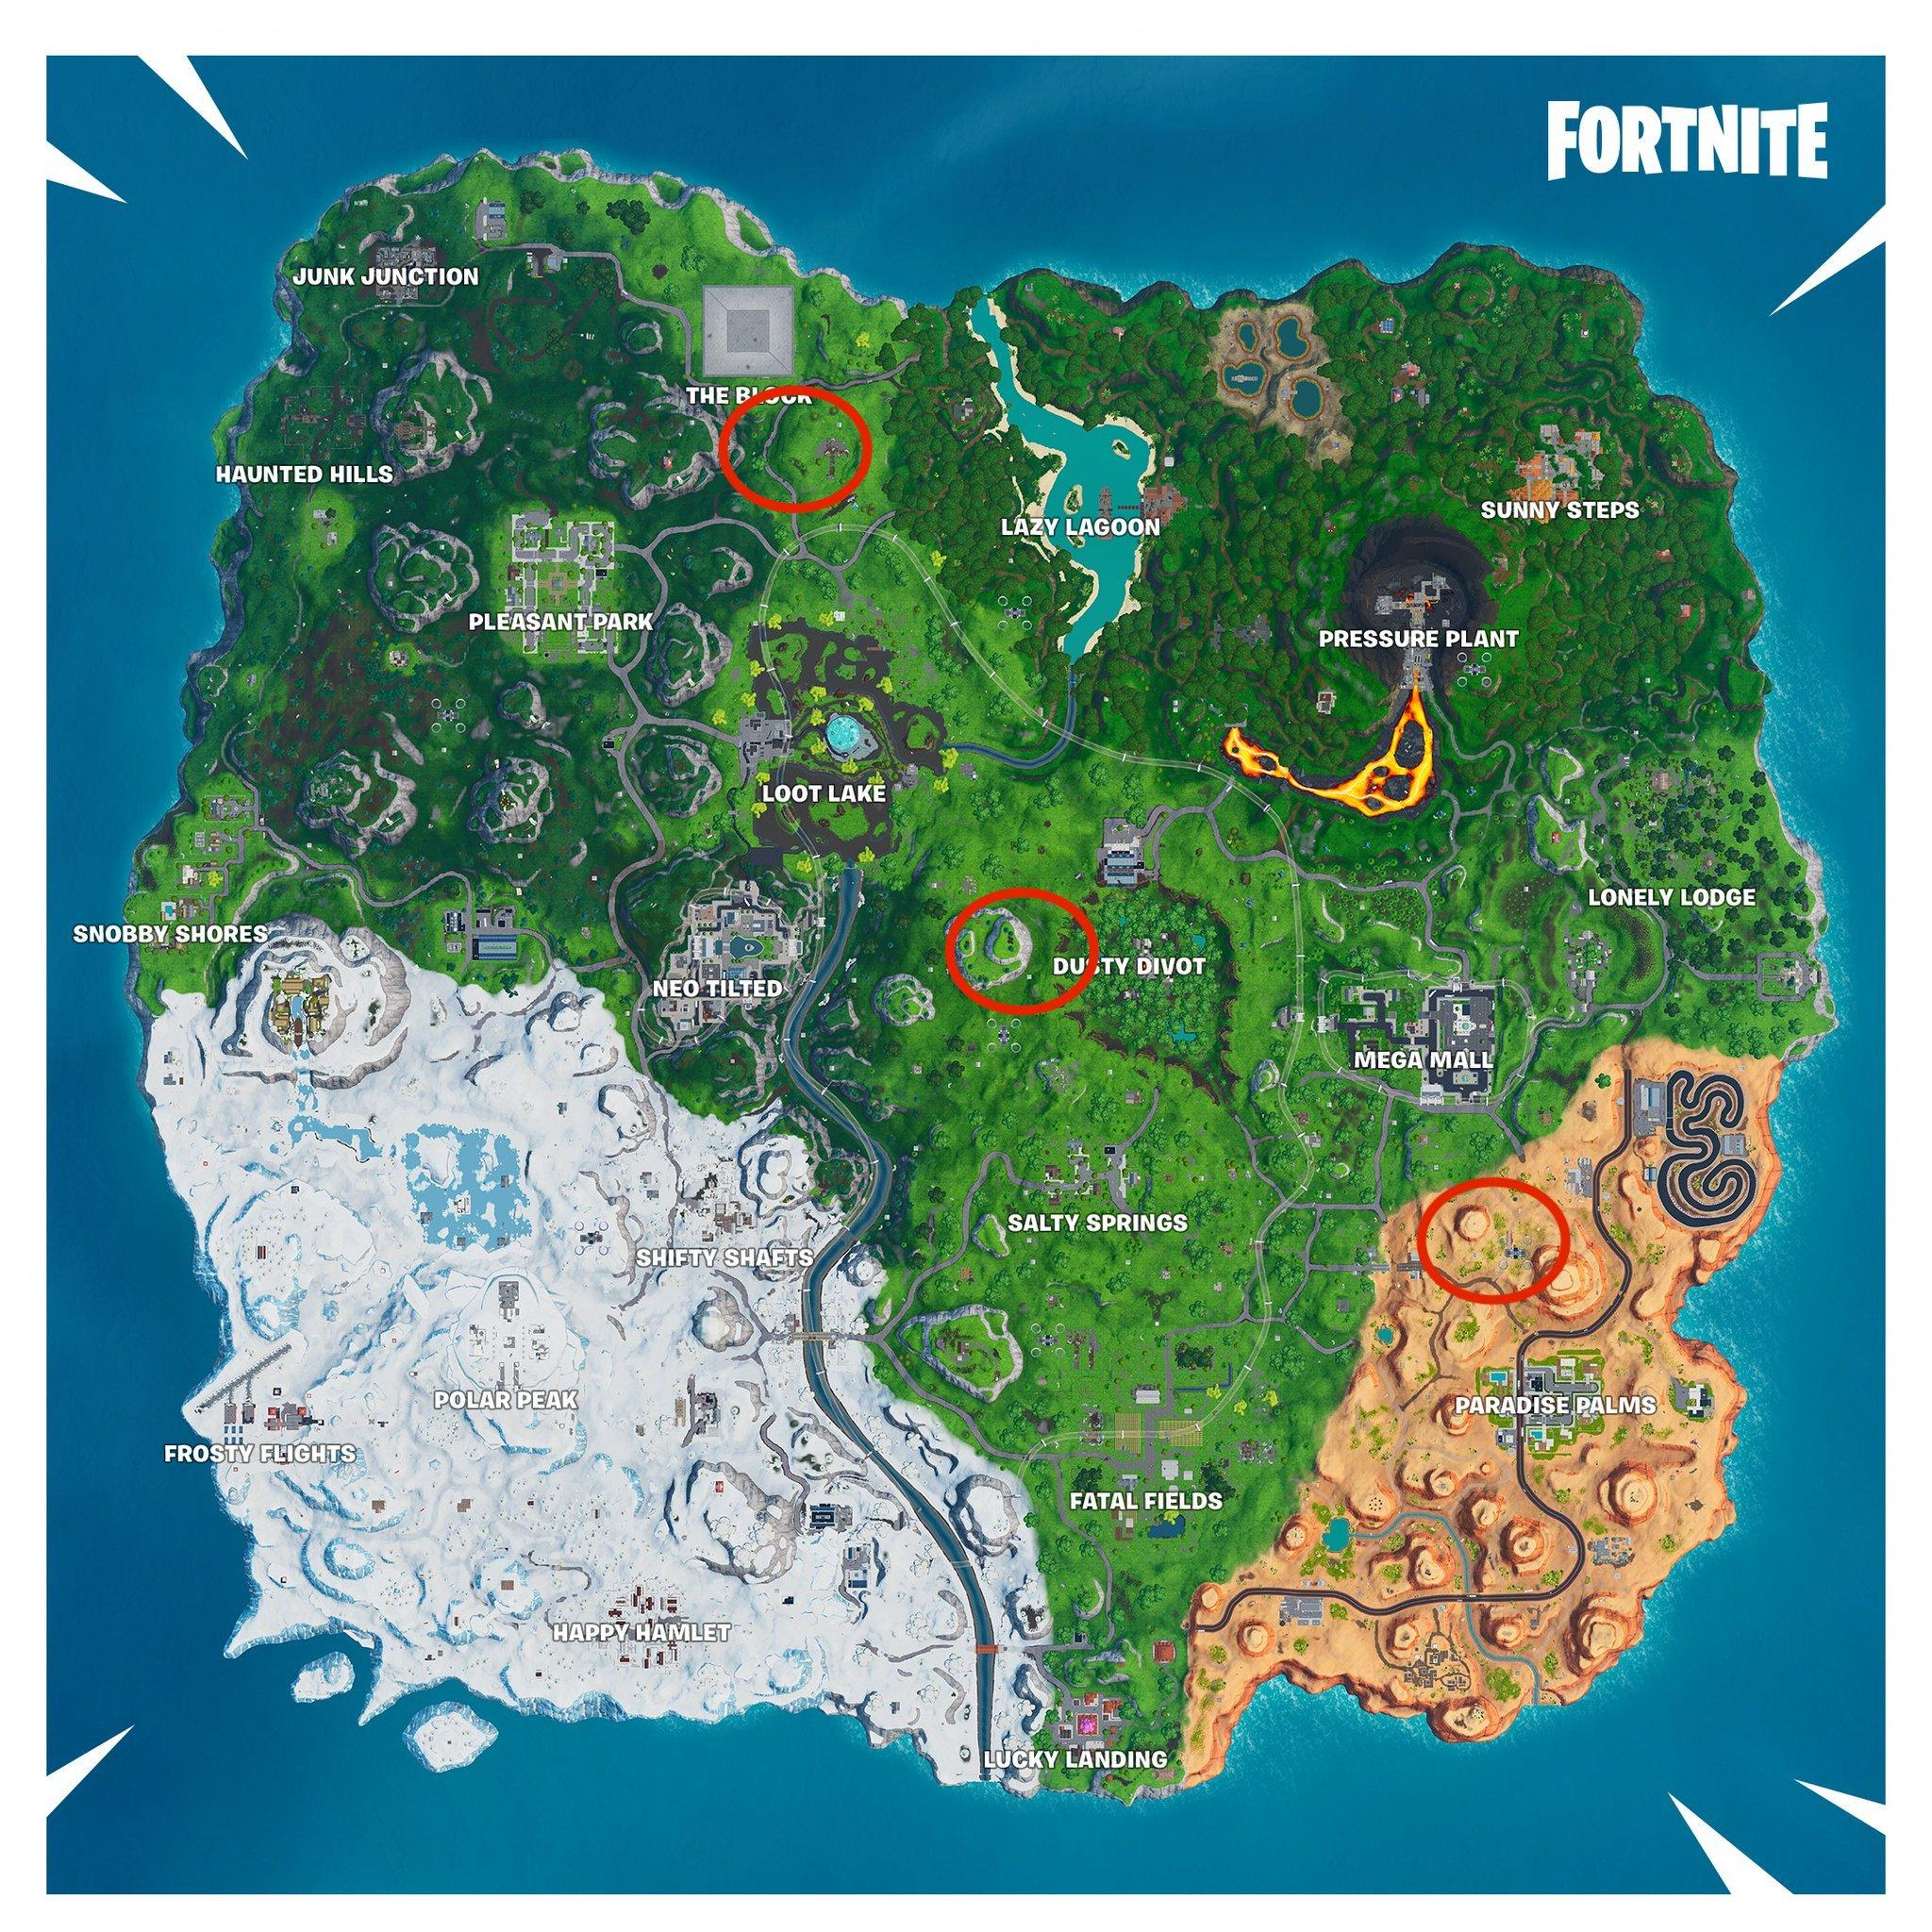 All Seven Waterfalls In Fortnite Fortnite Season 9 Week 7 Challenges And Where To Find The Giant Beach Ball Cnet